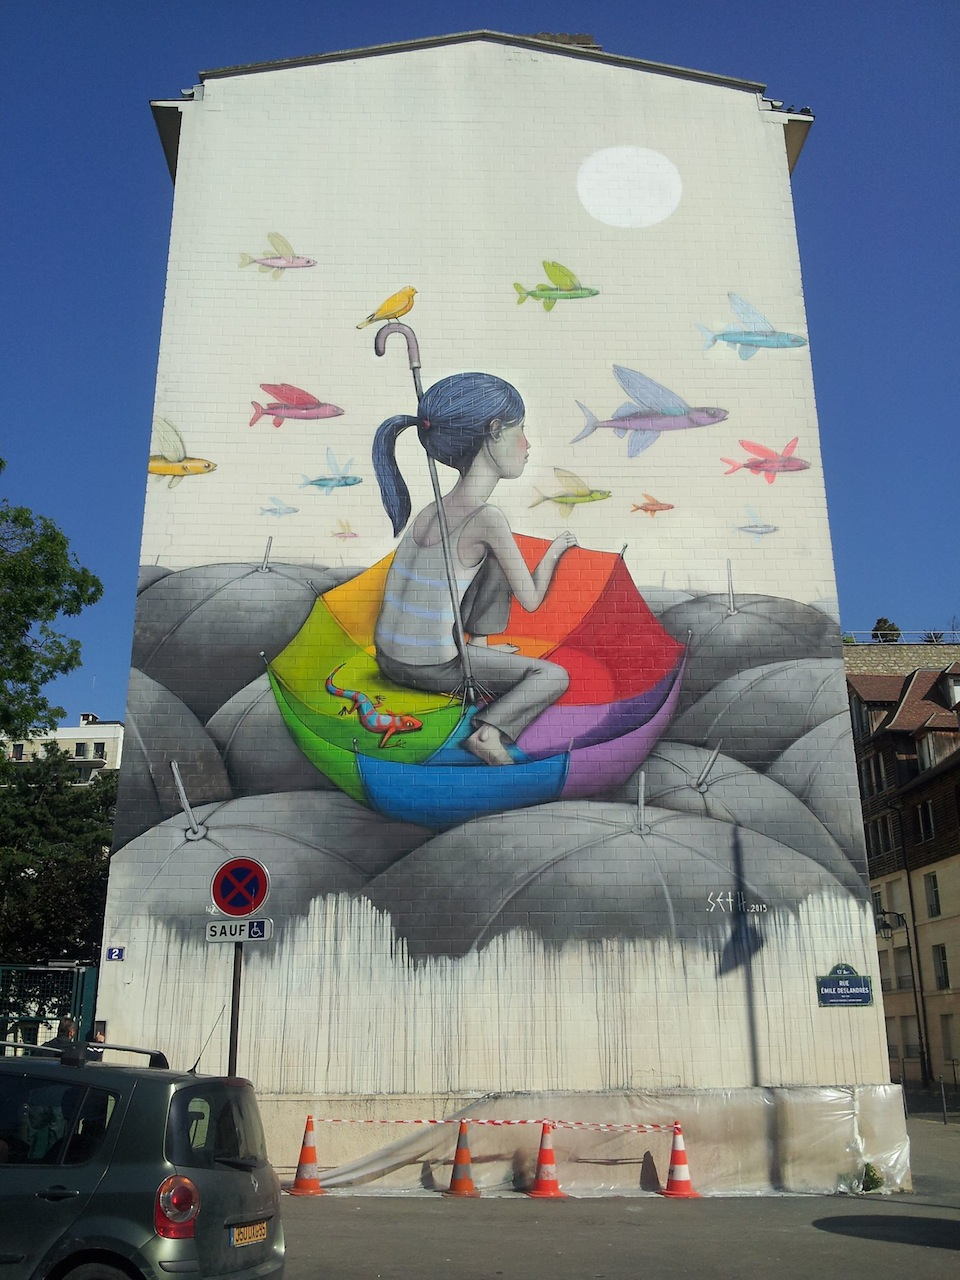 By Seth - In Paris, France